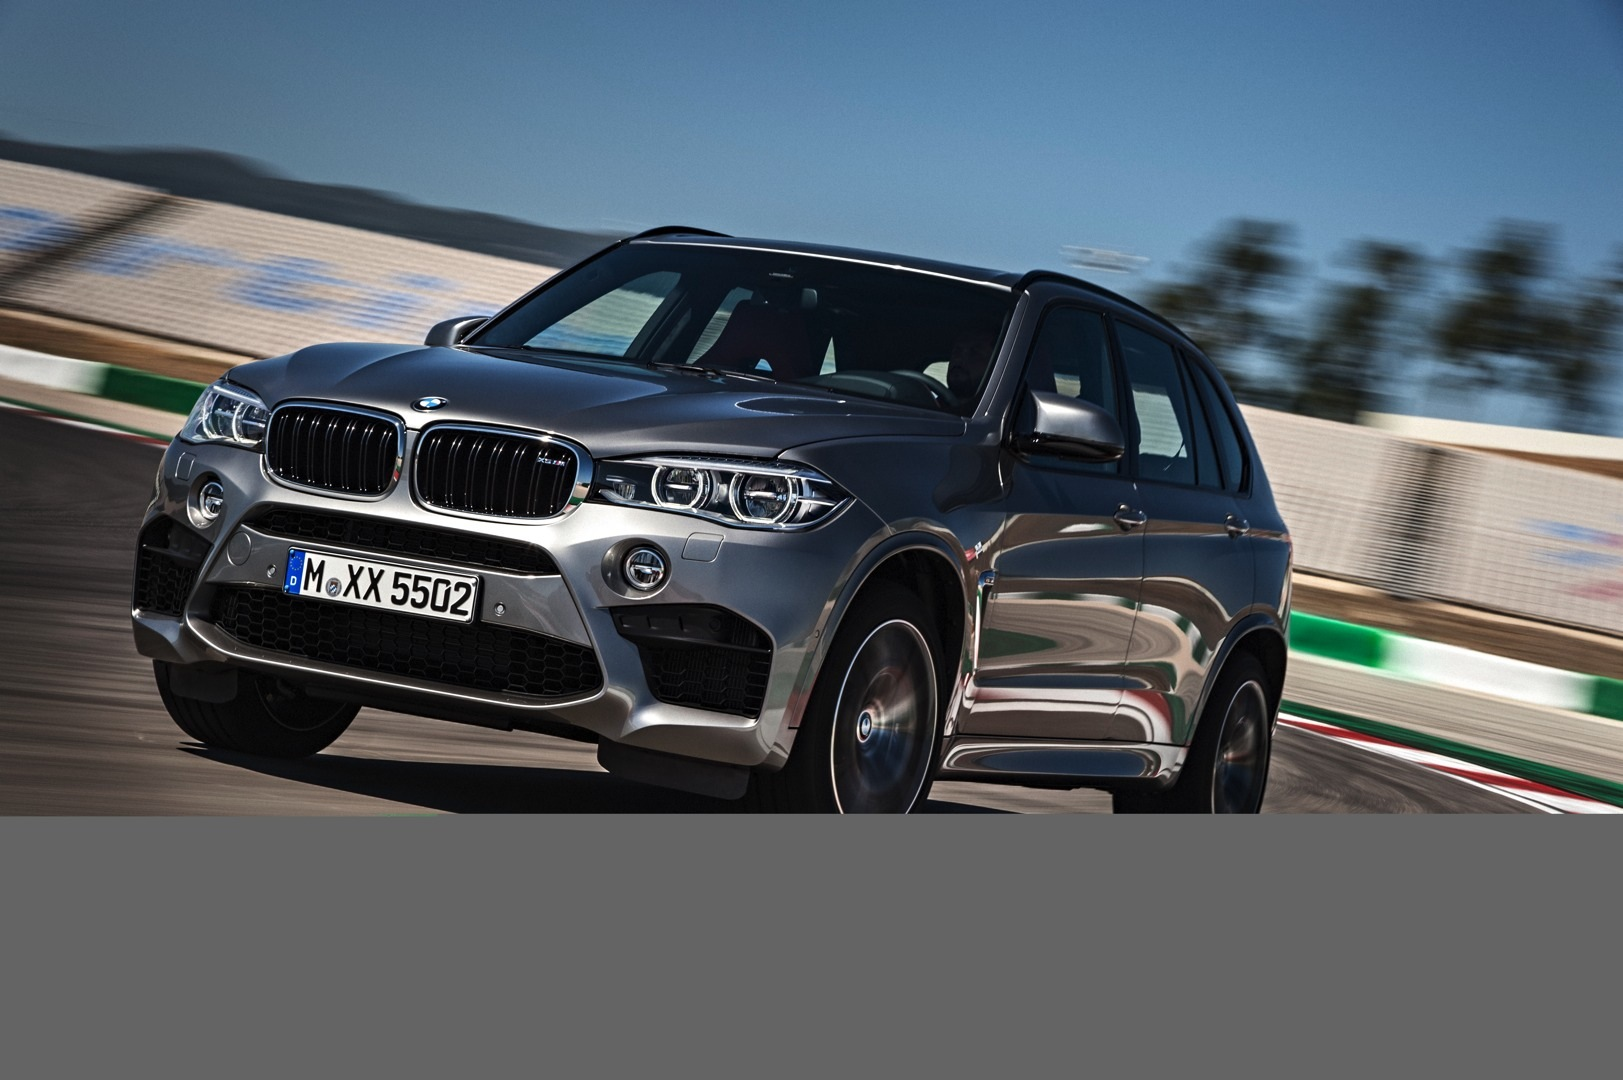 2015 bmw x5 m and x6 m pricing starts at 99 650 in the us autoevolution. Black Bedroom Furniture Sets. Home Design Ideas